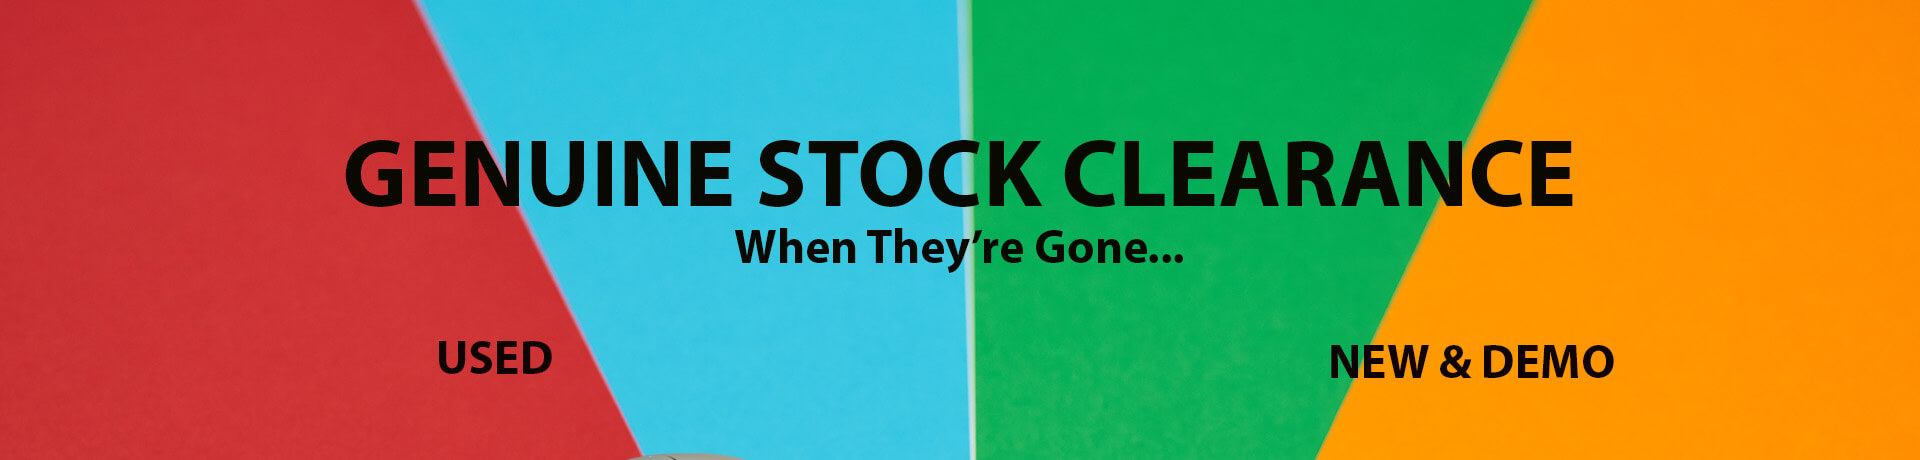 Genuine Stock Clearance